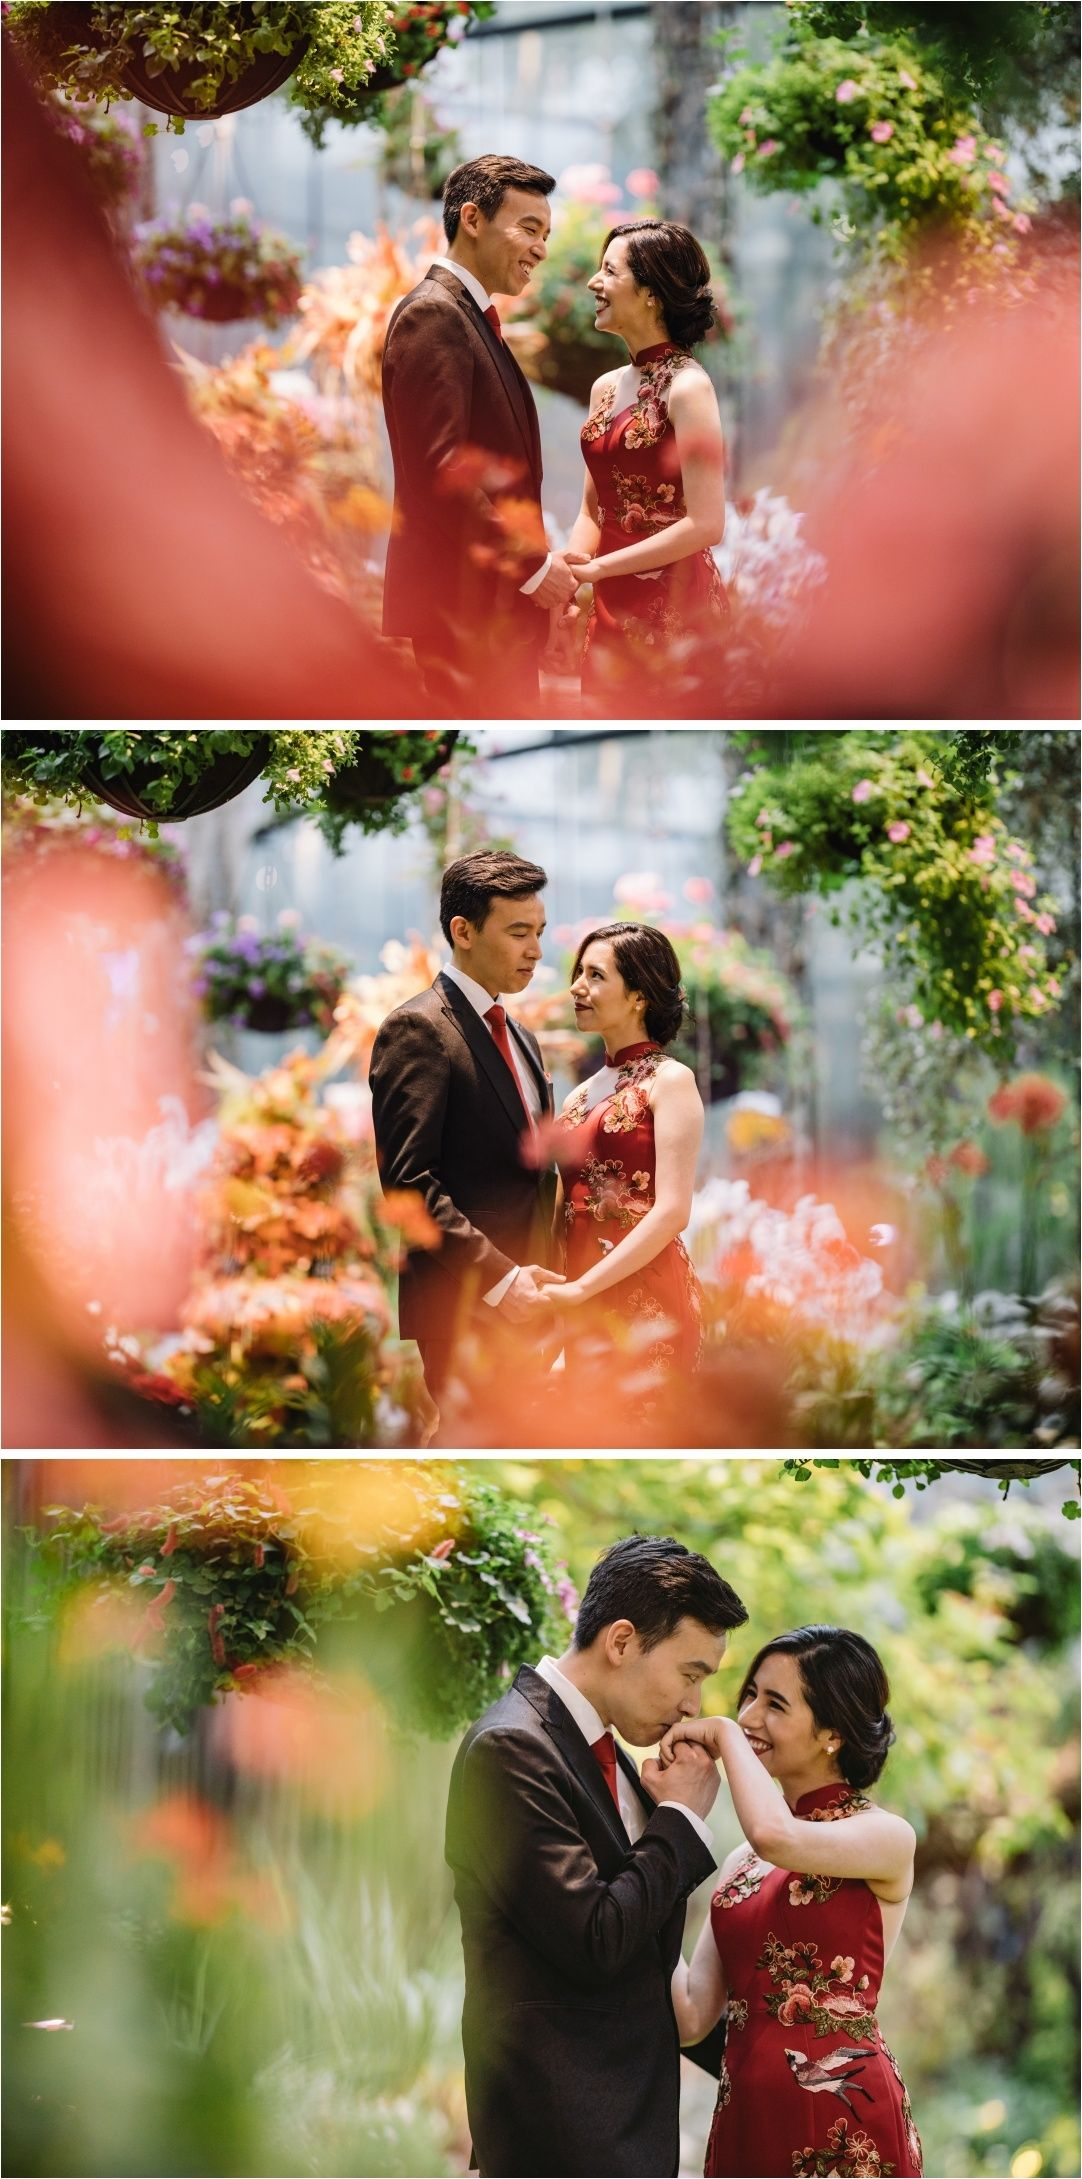 Singapore PreWedding Photography Package in 2020